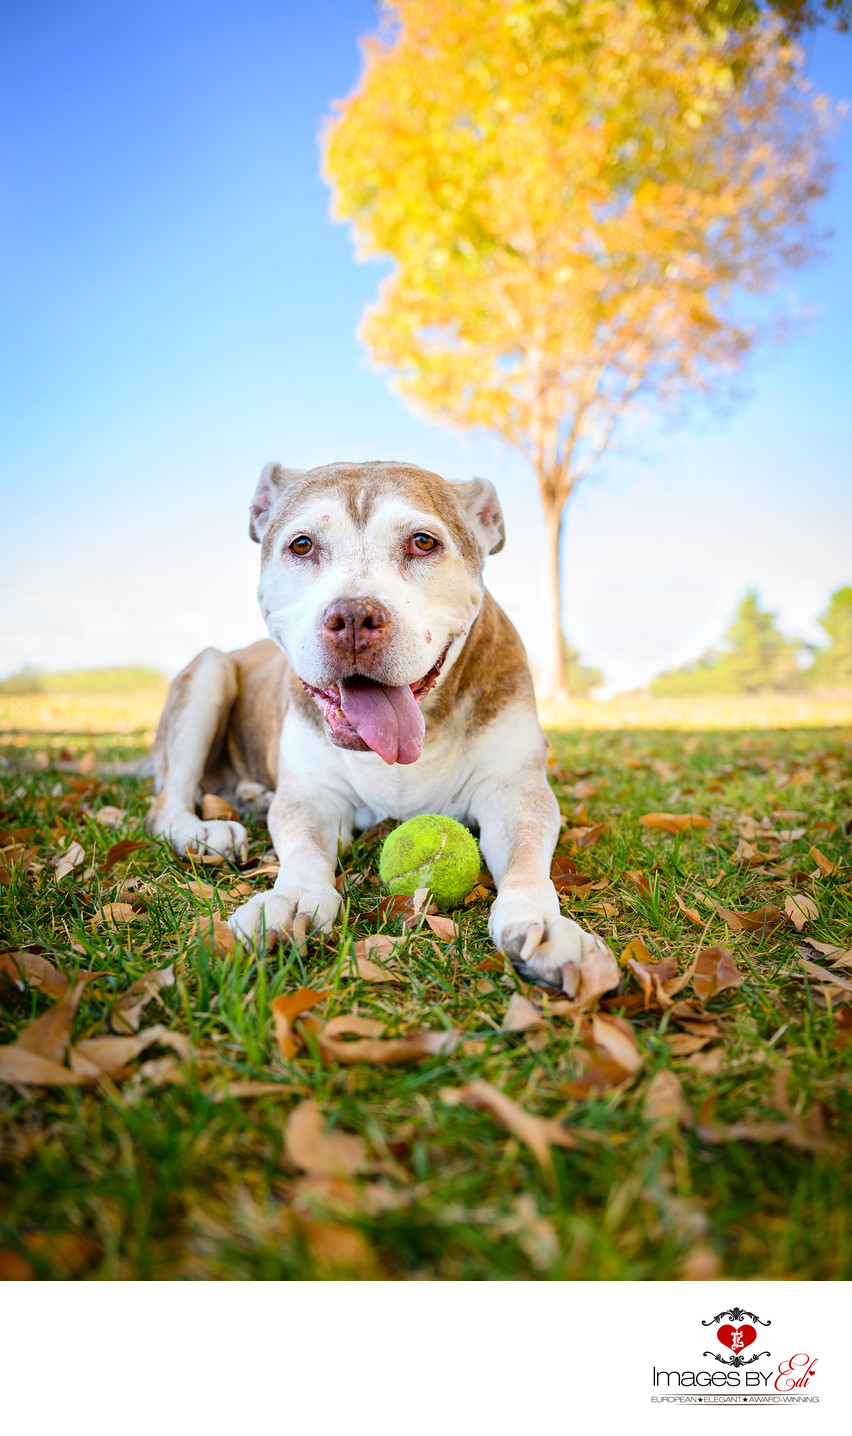 Las Vegas Senior Pet Photography | American Pit Bull Terrier | Fall Las Vegas Dog Photo session at the Park With Yellow Leaves | Images By EDI